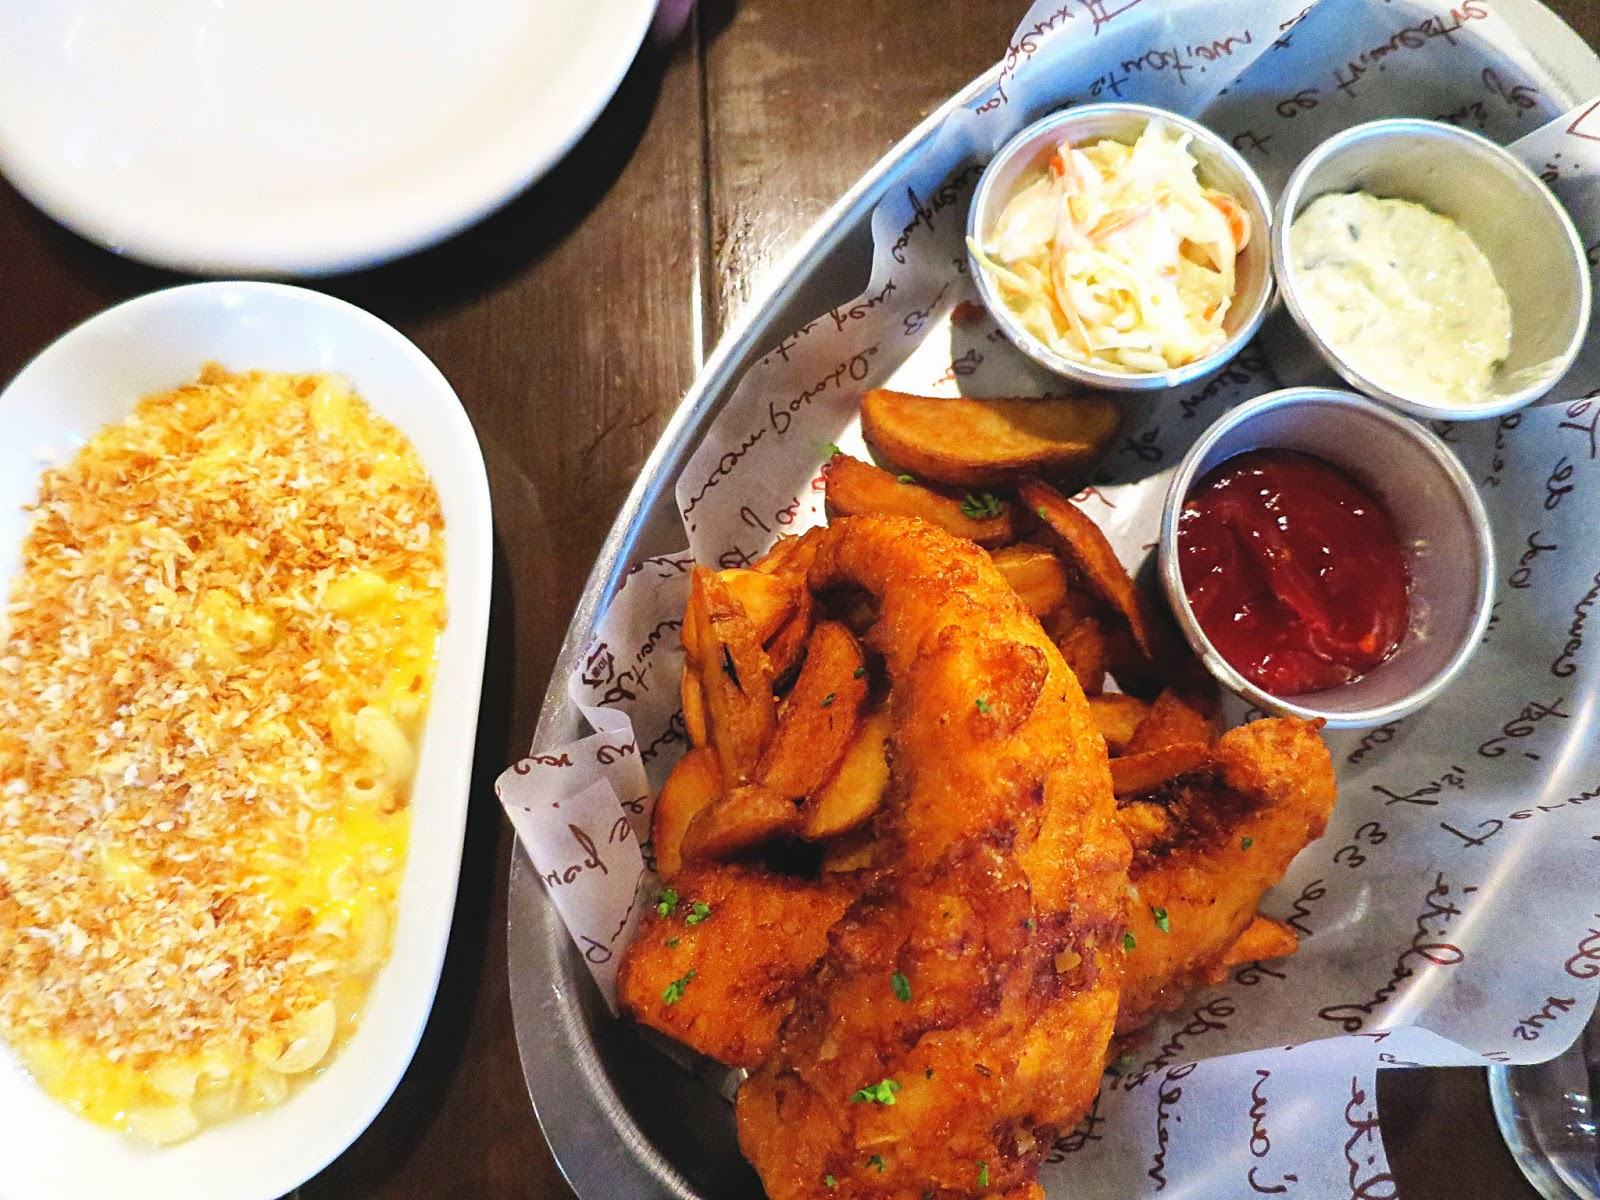 Photo of Fish and Chips next to a dish of Mac'n'cheese from Burger B